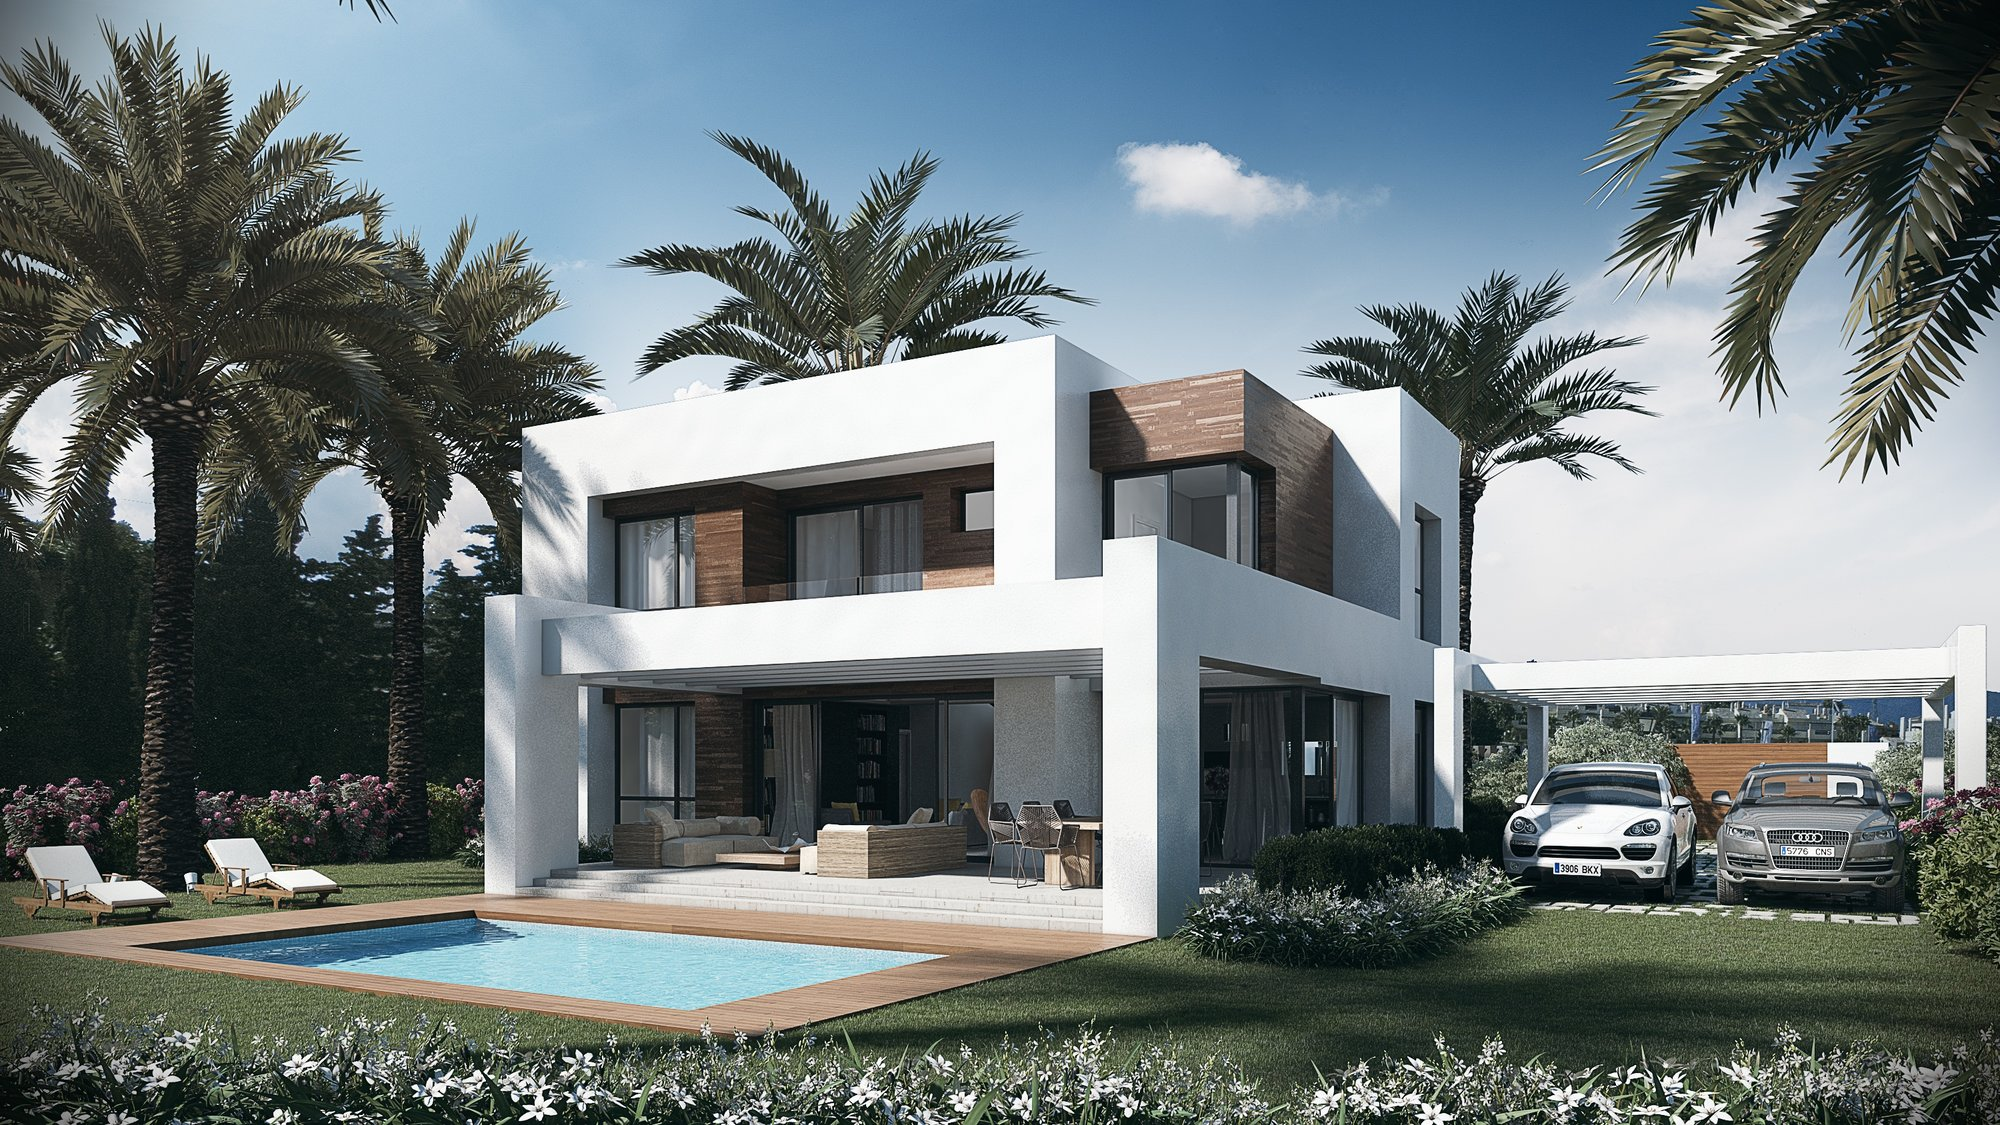 aaa4 bedroom Villa in Atalaya, Estepona | M193056